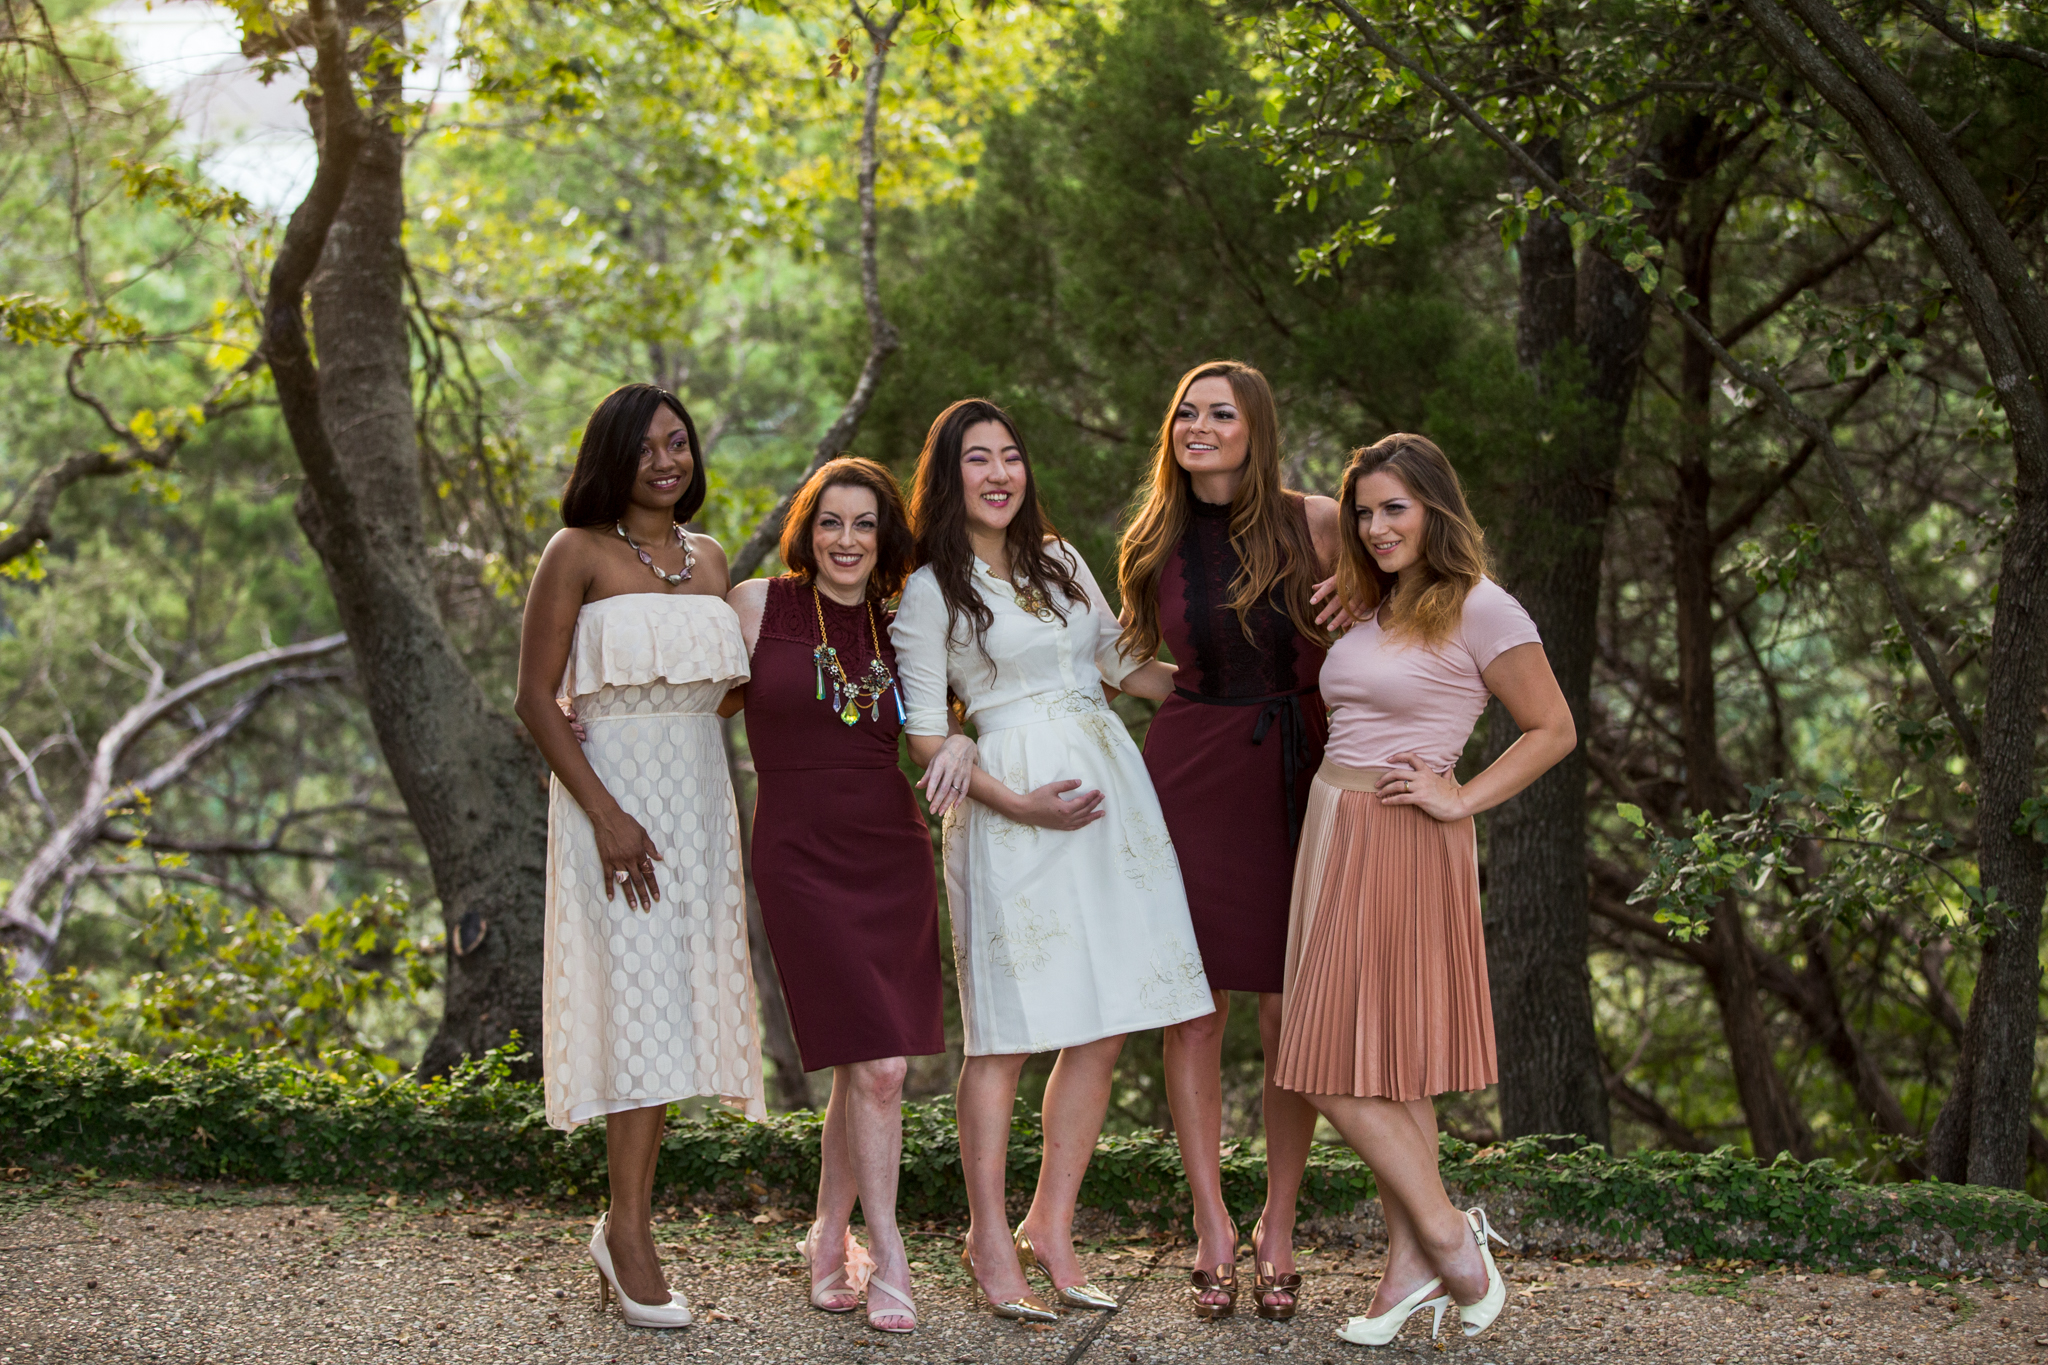 This great group of models from central Texas were awesome to work with. On location in Georgetown.